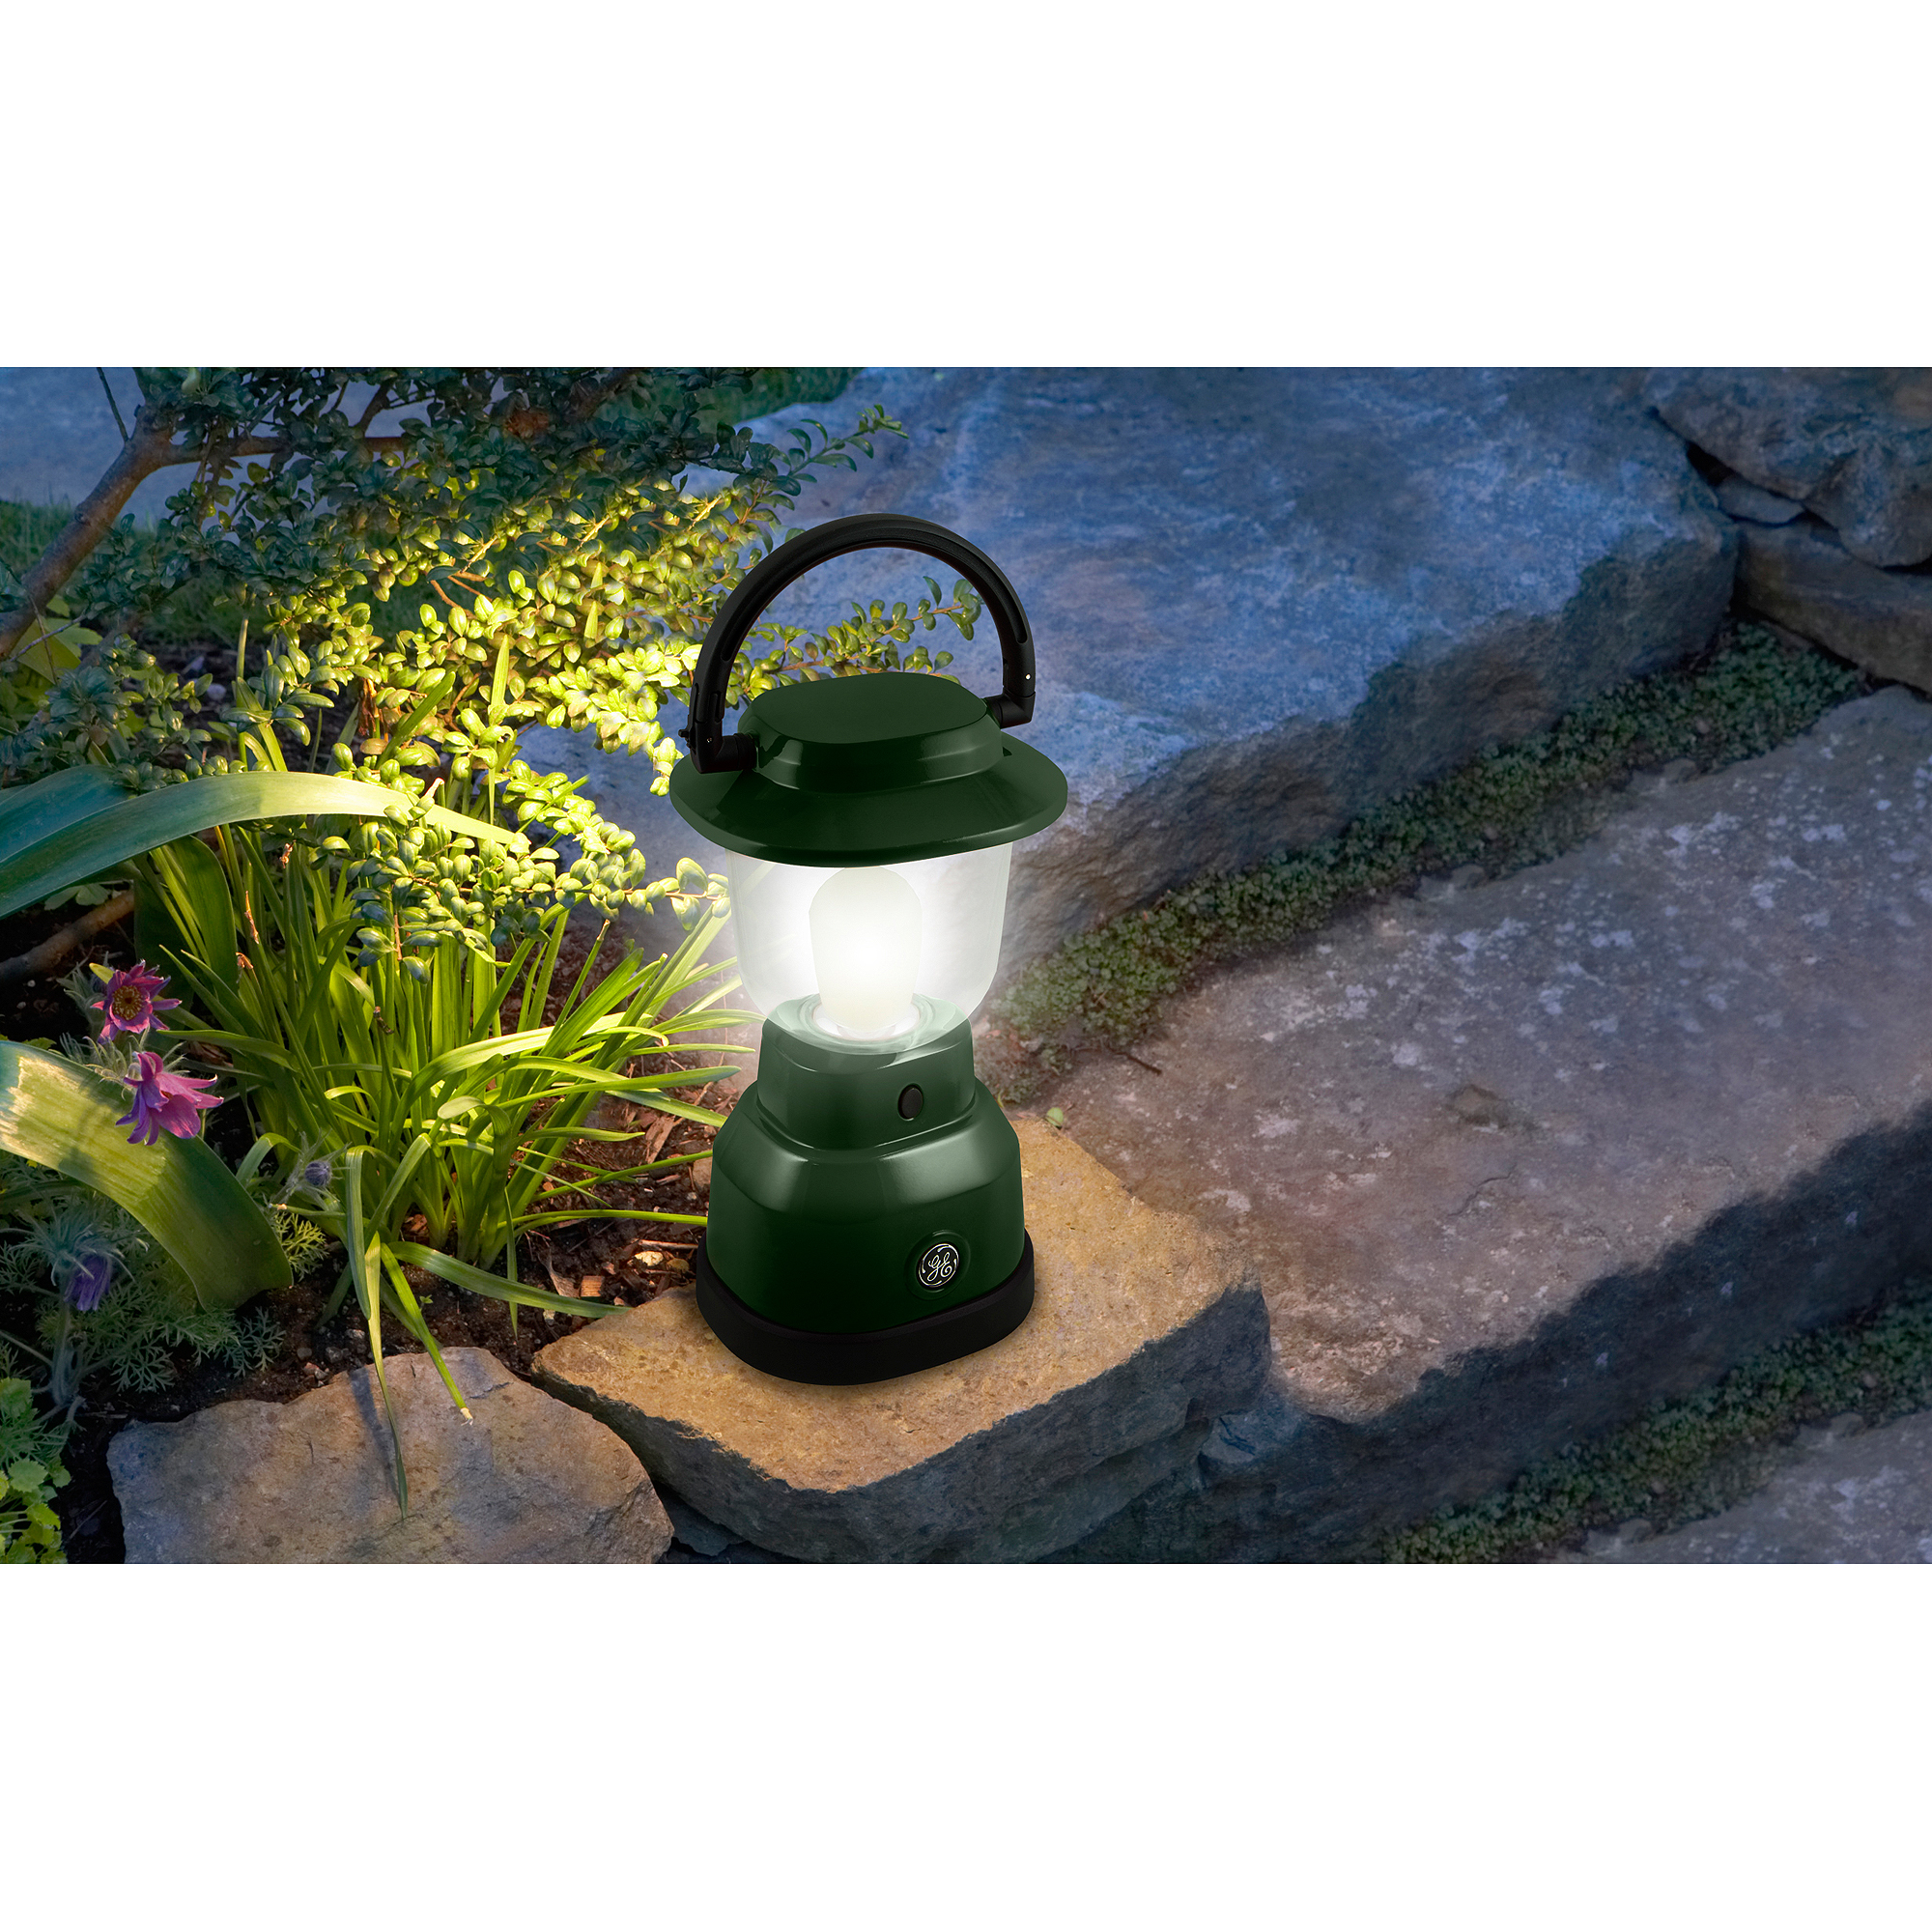 GE Enbrighten Weather-Resistant Dimmable Lantern, Green by Jasco Products